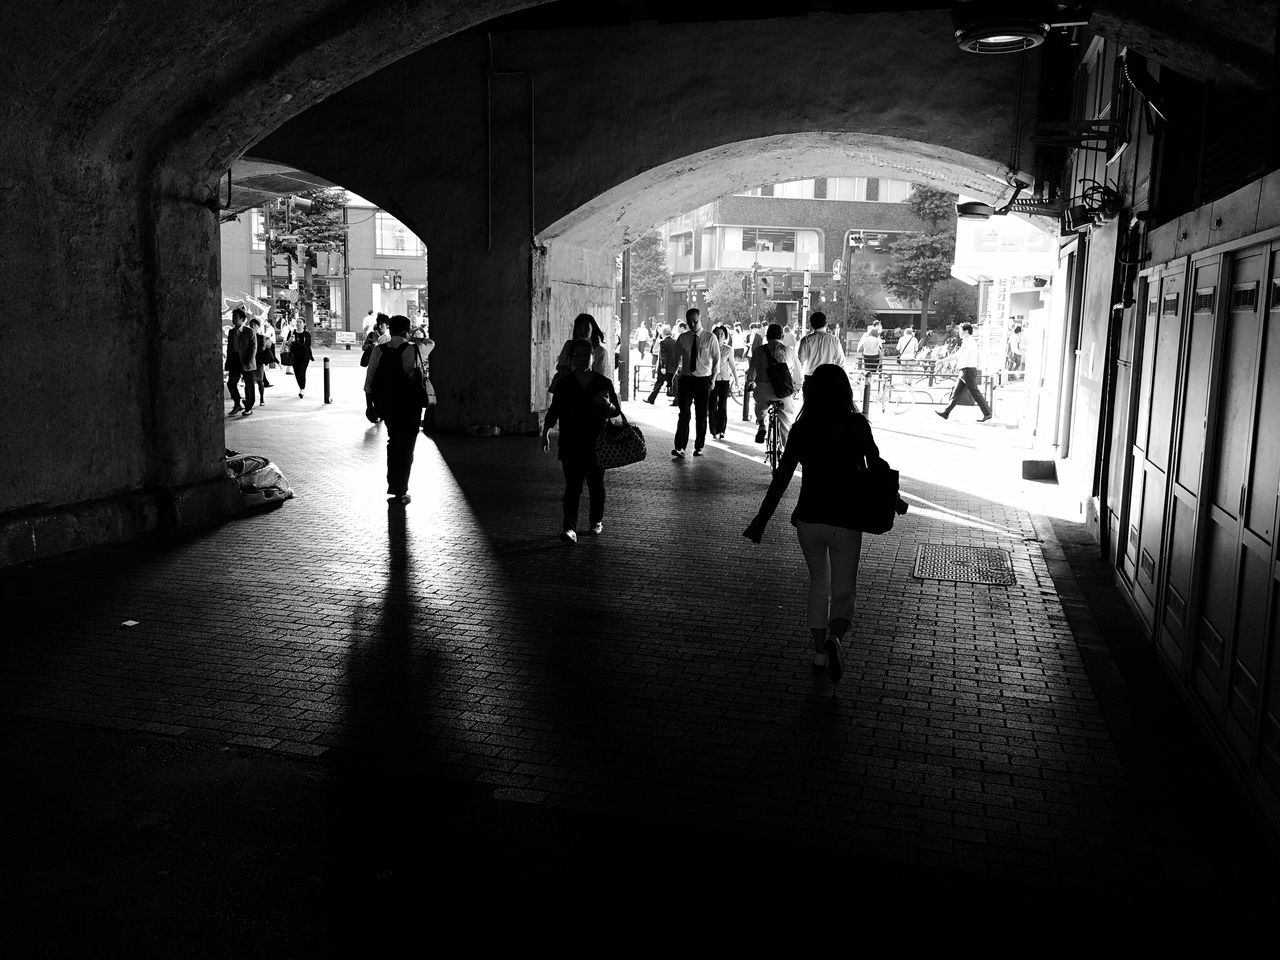 View Of People Walking In Underpass